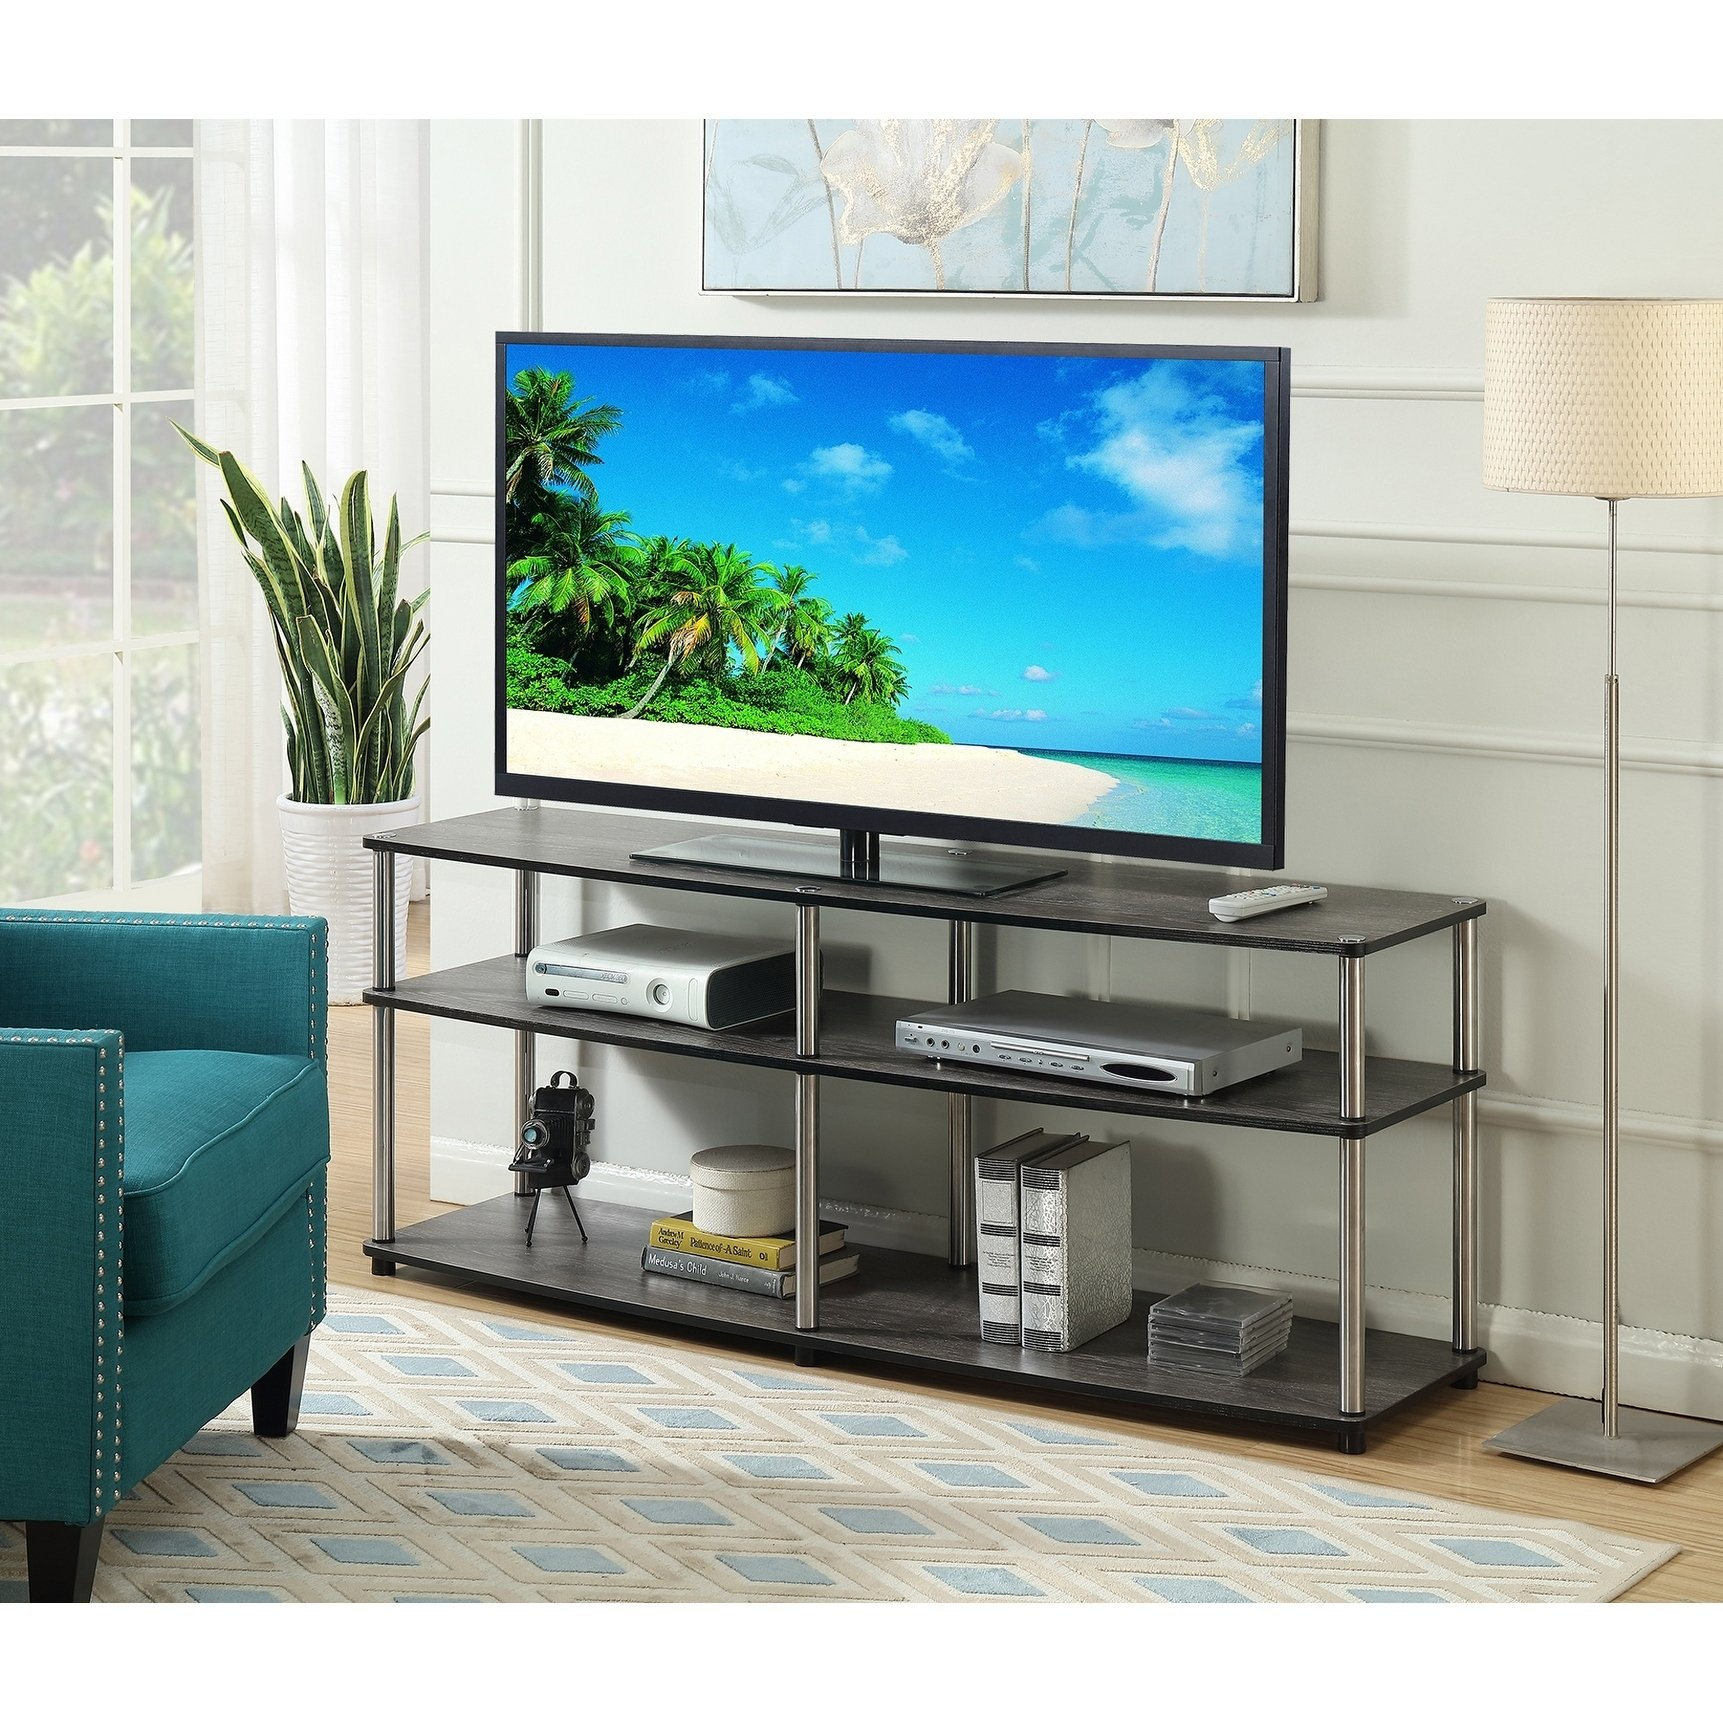 Buy Grey, 42 – 60 Inches Tv Stands & Entertainment Centers Online At Within Rowan 45 Inch Tv Stands (View 17 of 30)